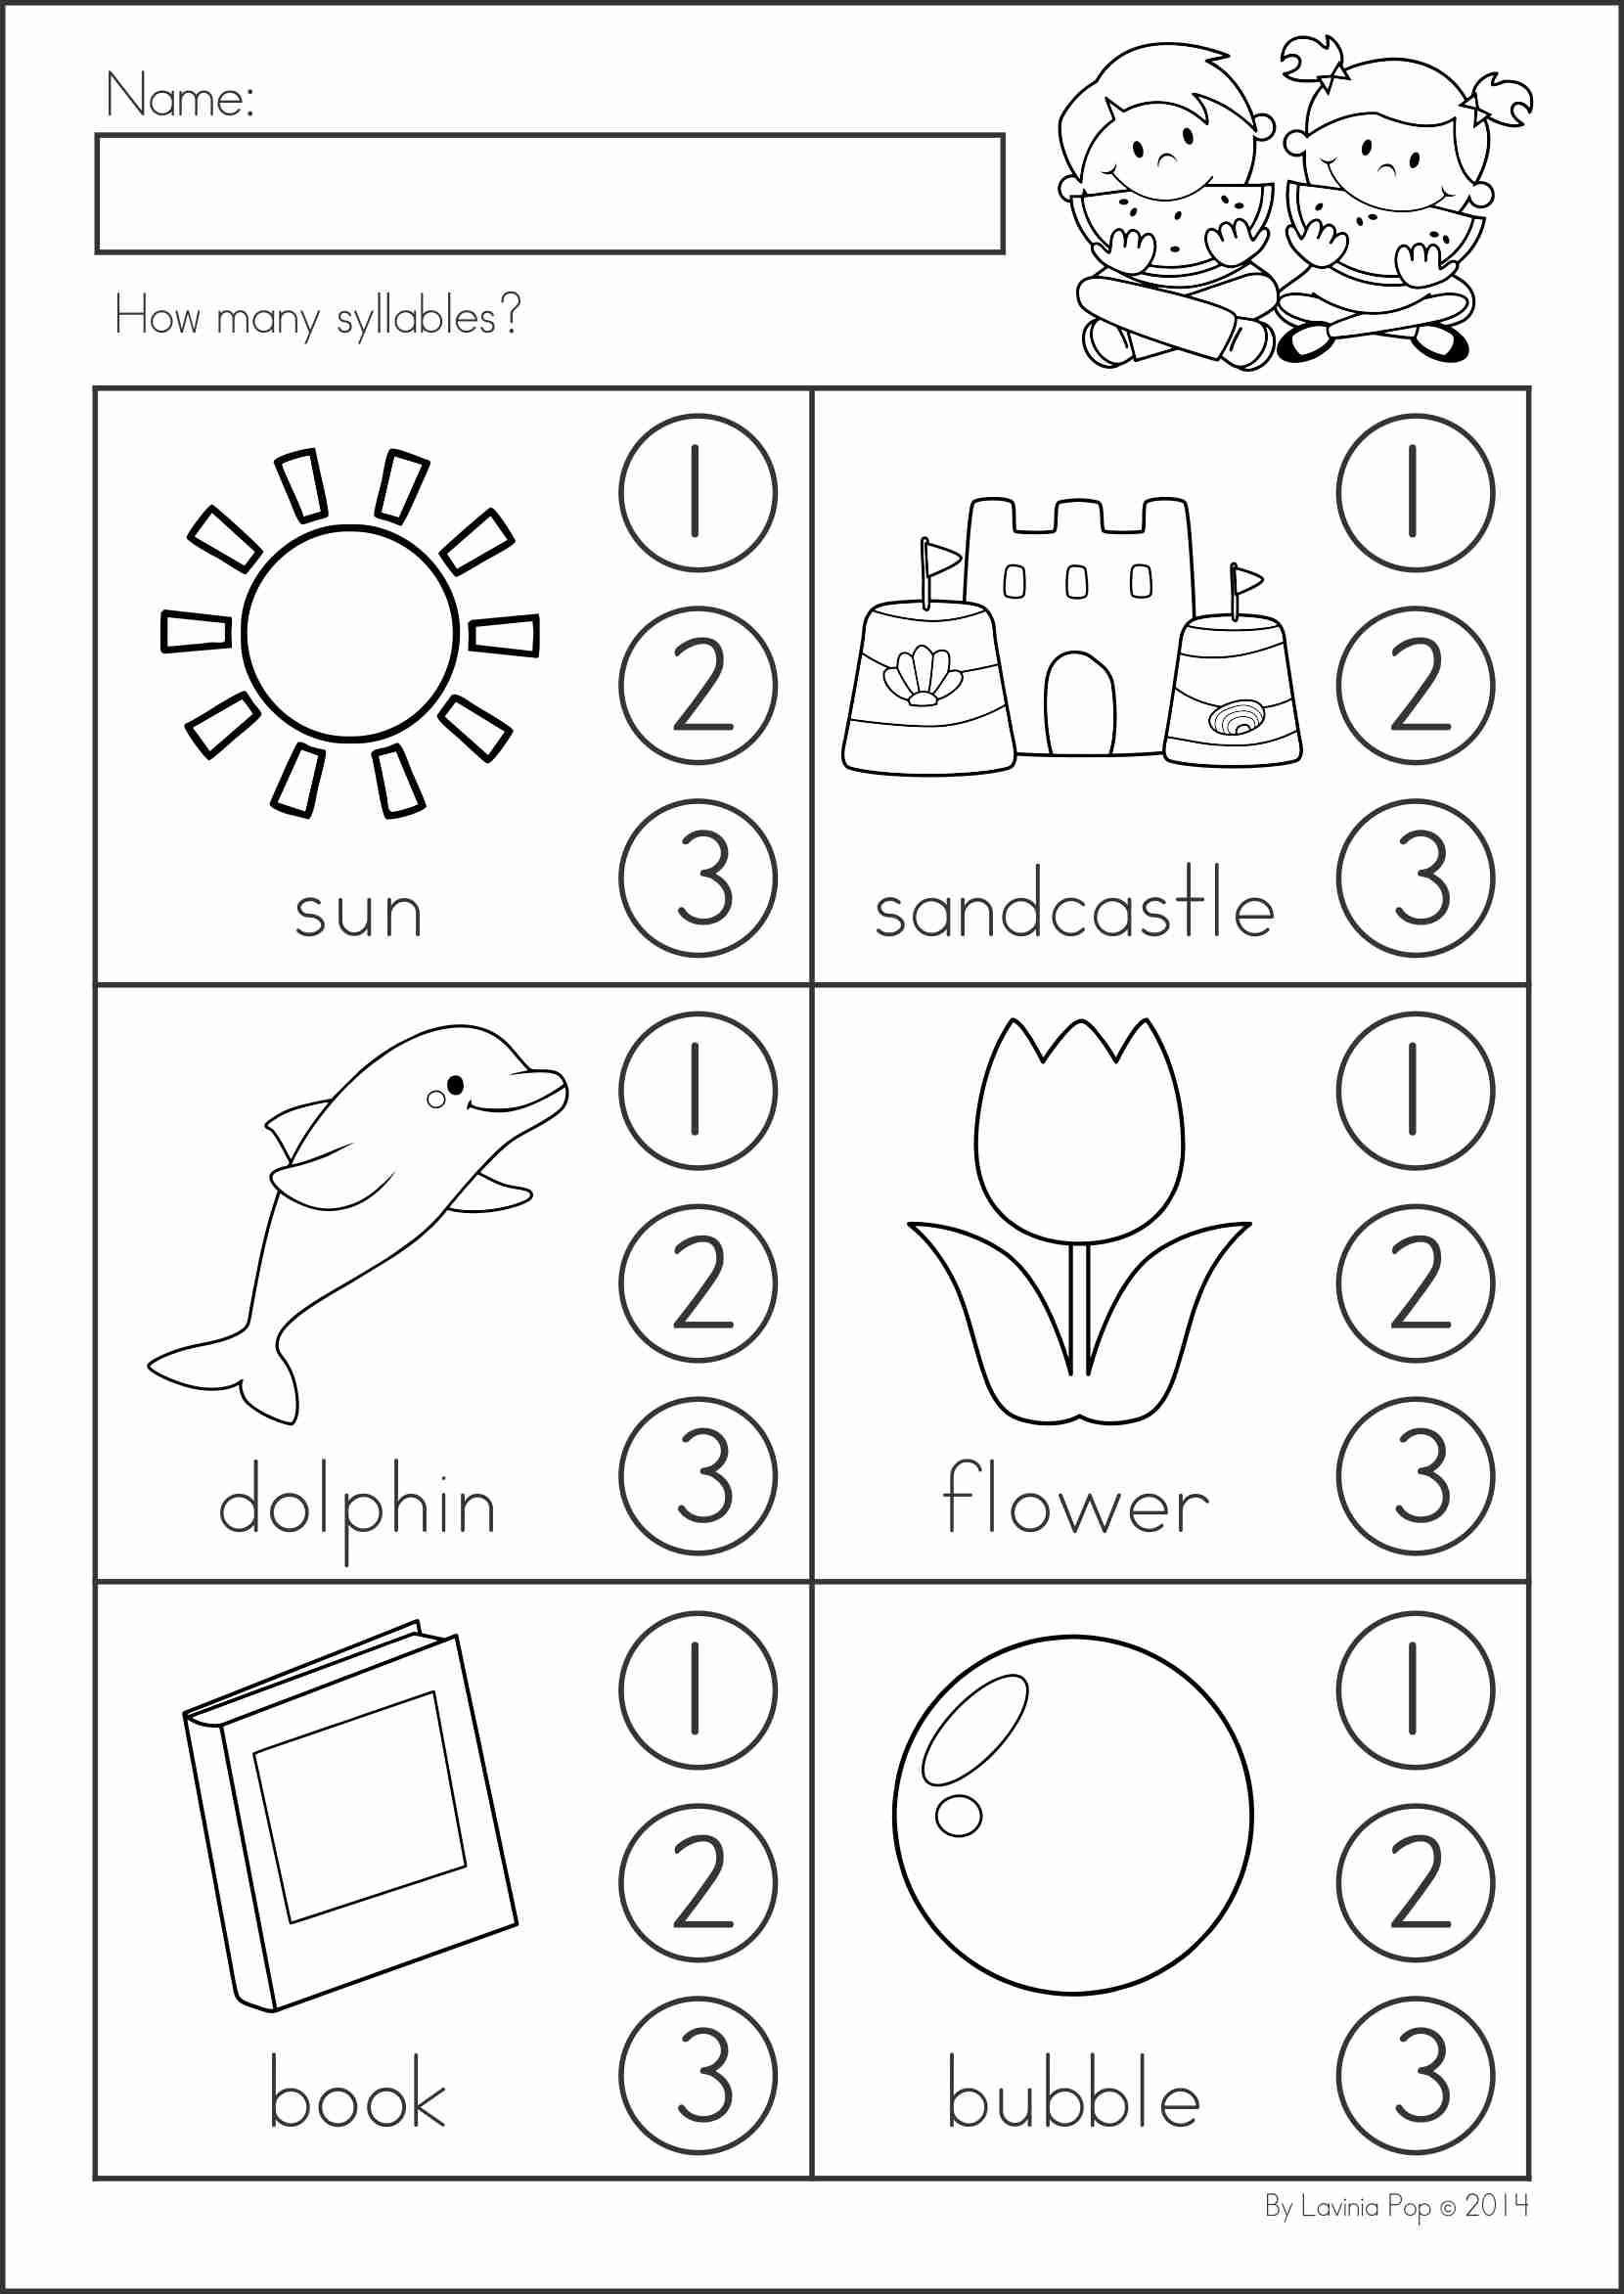 Free Syllable Worksheets for Kindergarten Pin by Anita Arag³n On Creatividad